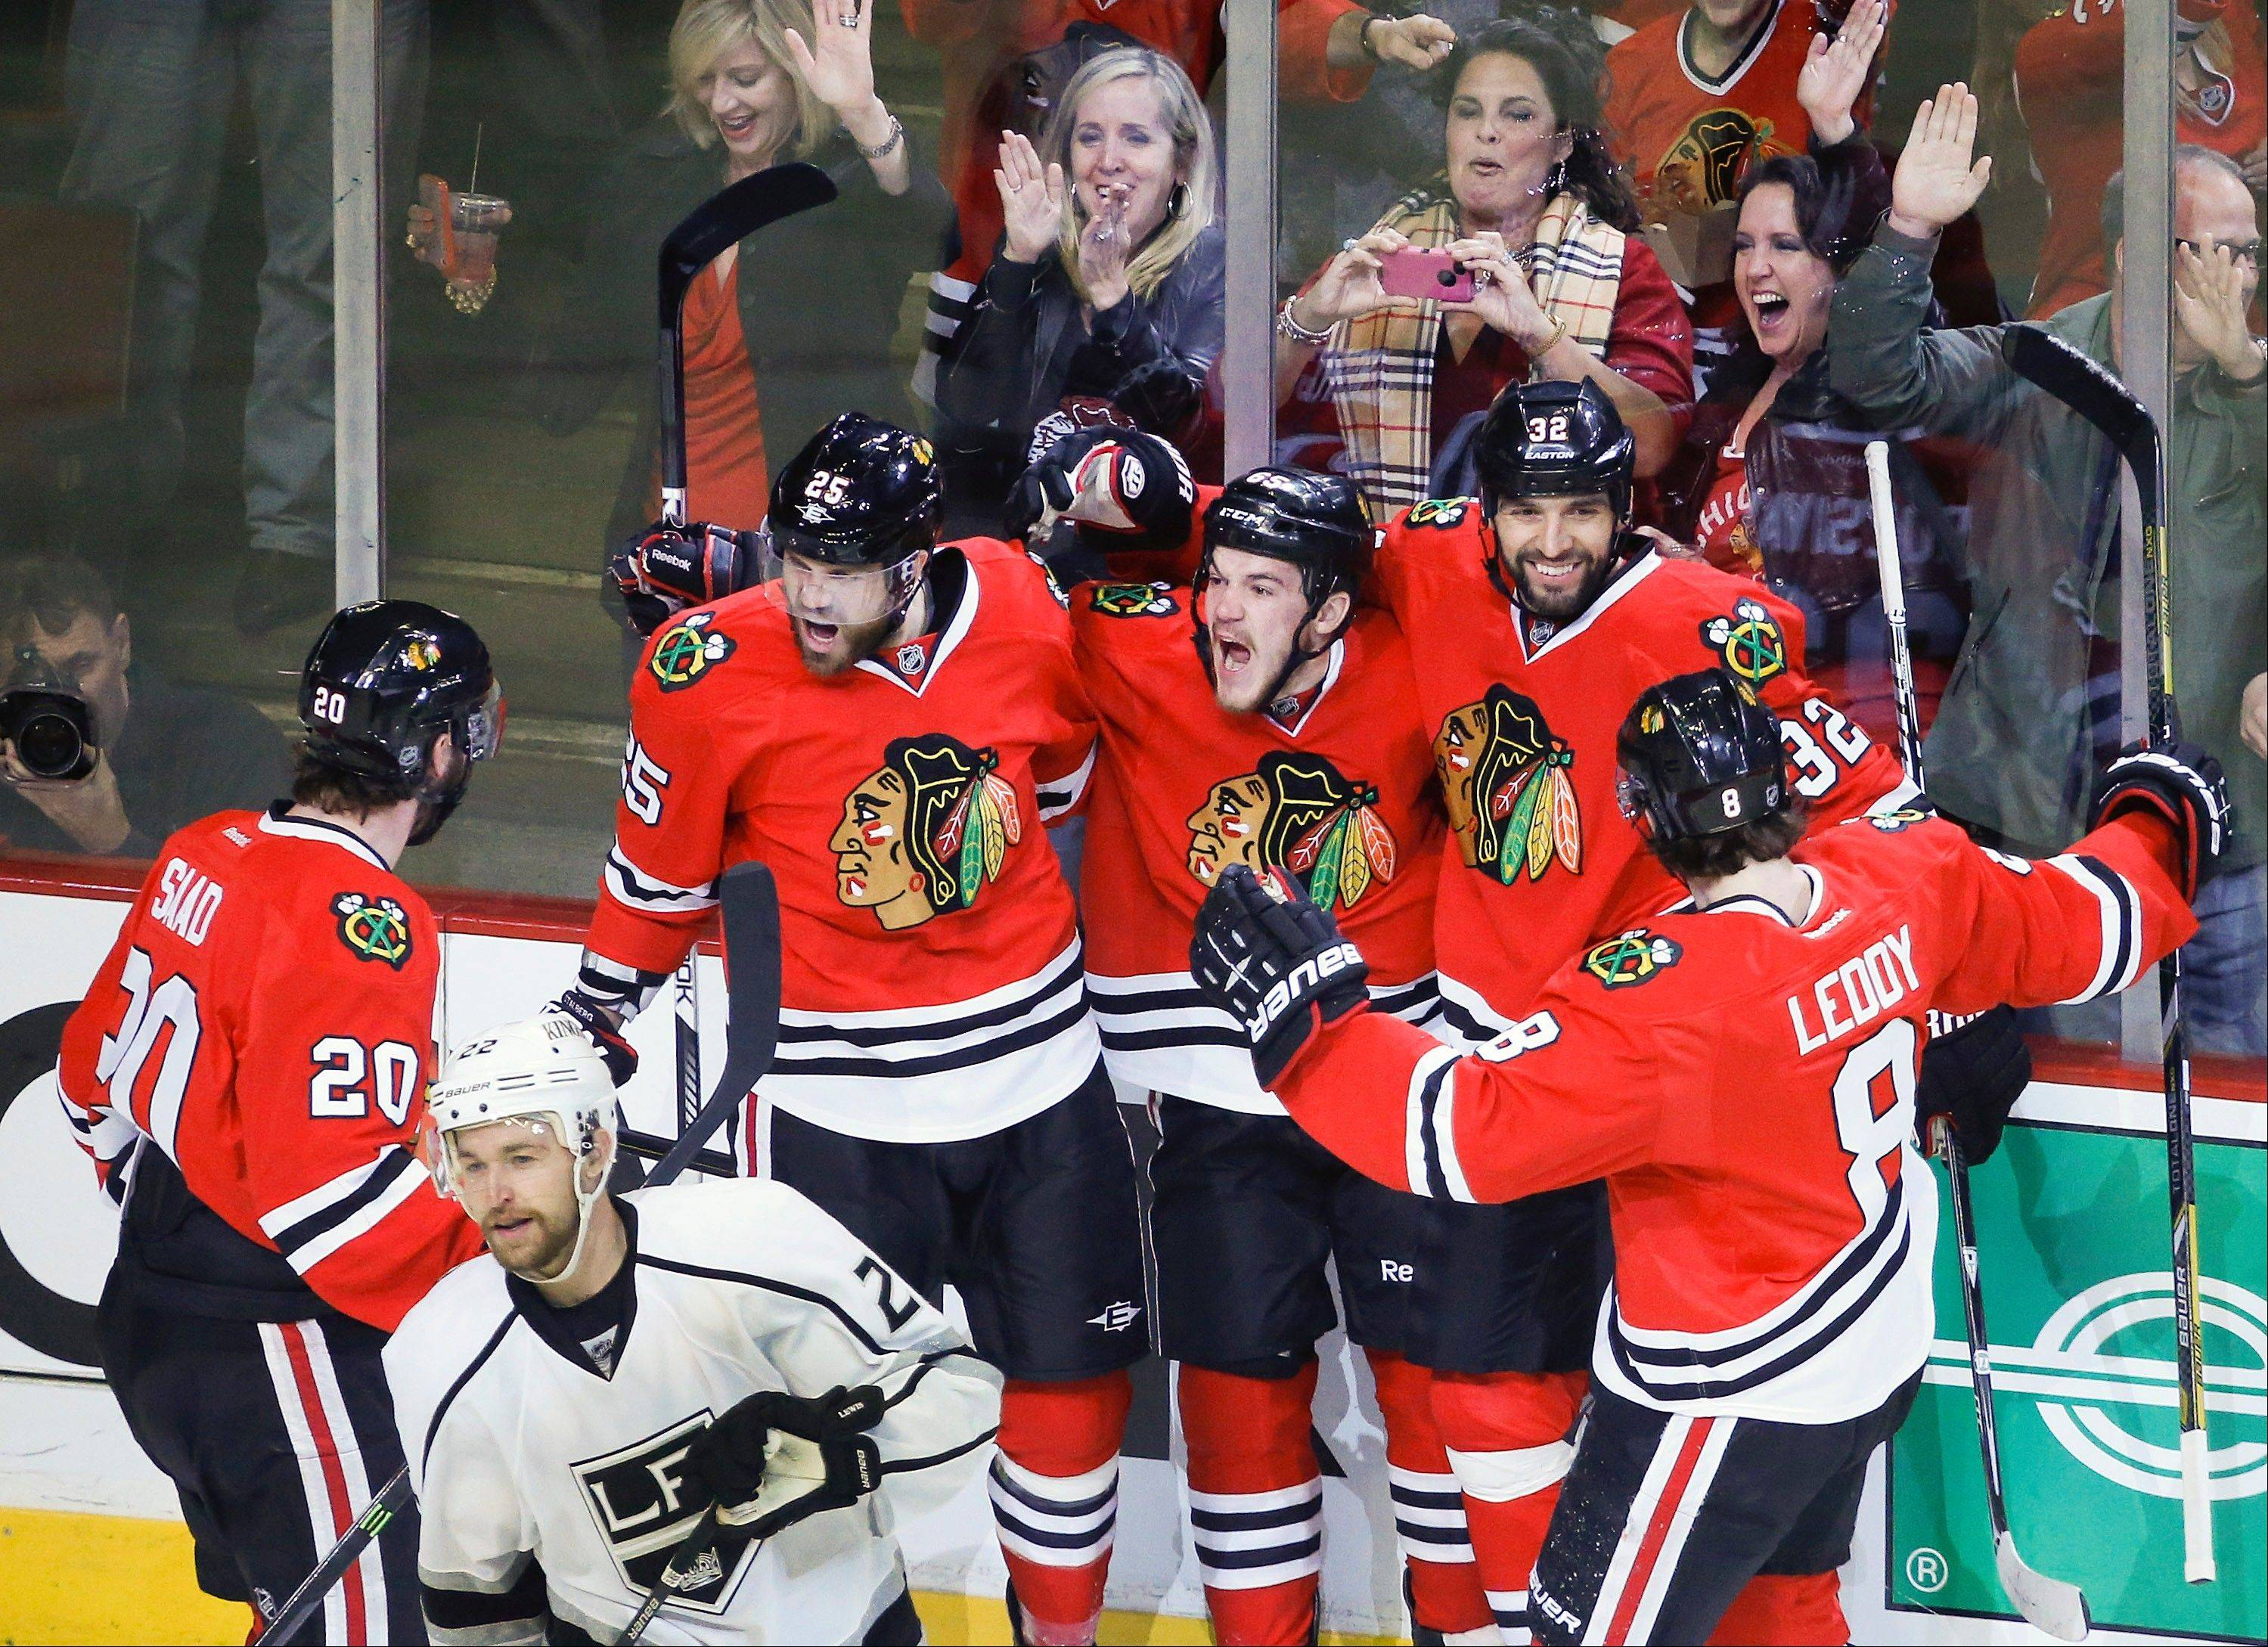 The Chicago Blackhawks celebrate after center Andrew Shaw (65) scored a goal against the Los Angeles Kings during the first period in Game 2 of the NHL hockey Stanley Cup Western Conference finals Sunday, June 2, 2013 in Chicago. The Blackhawks won 2-1.